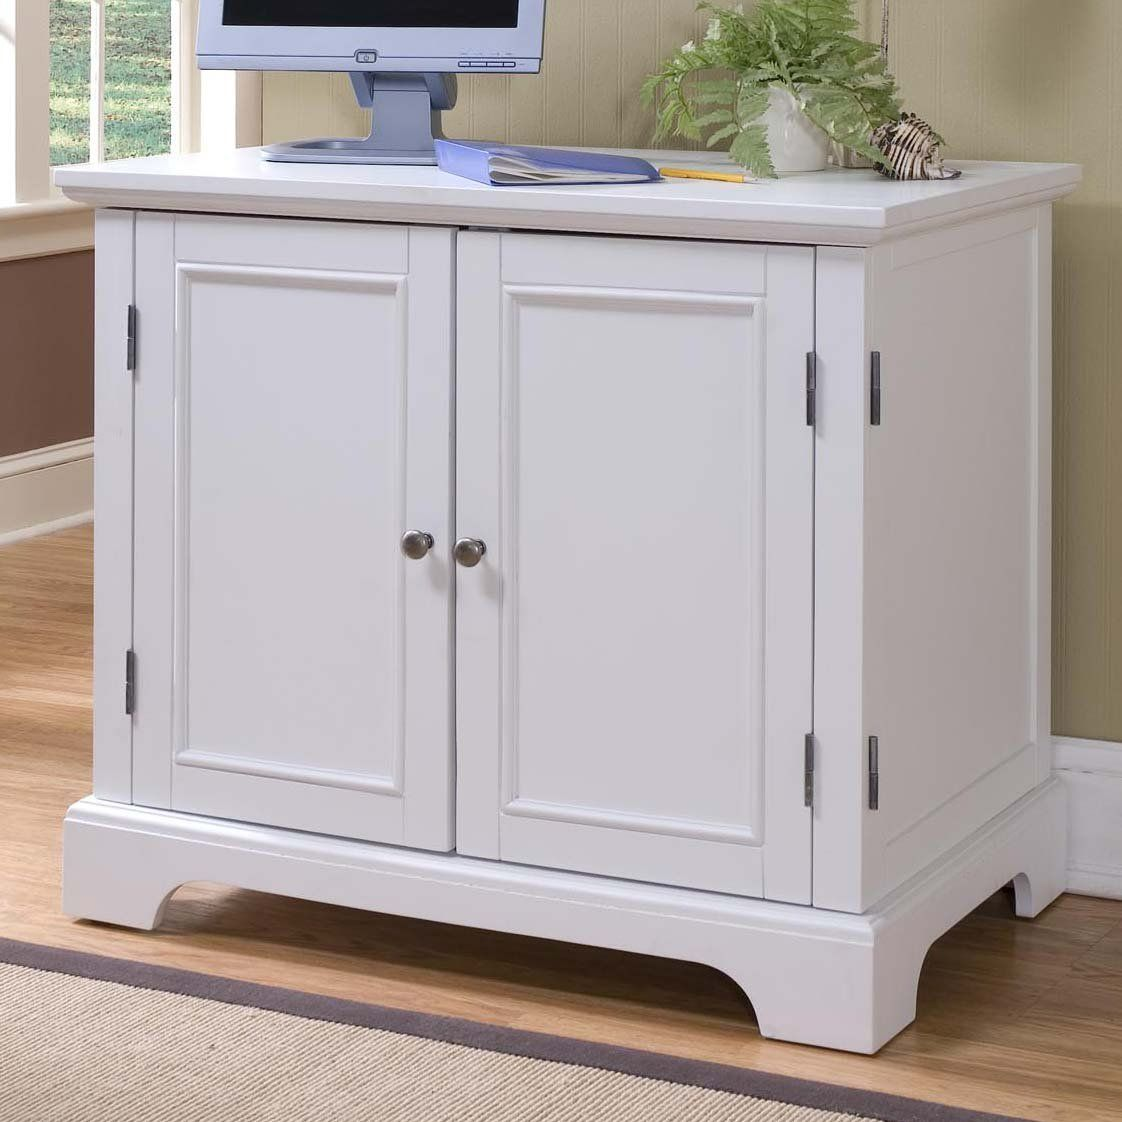 Home Styles Naples Compact Computer Cabinet At Atg S Browse Our Component Cabinets All With Free Shipping And Best Price Guaranteed